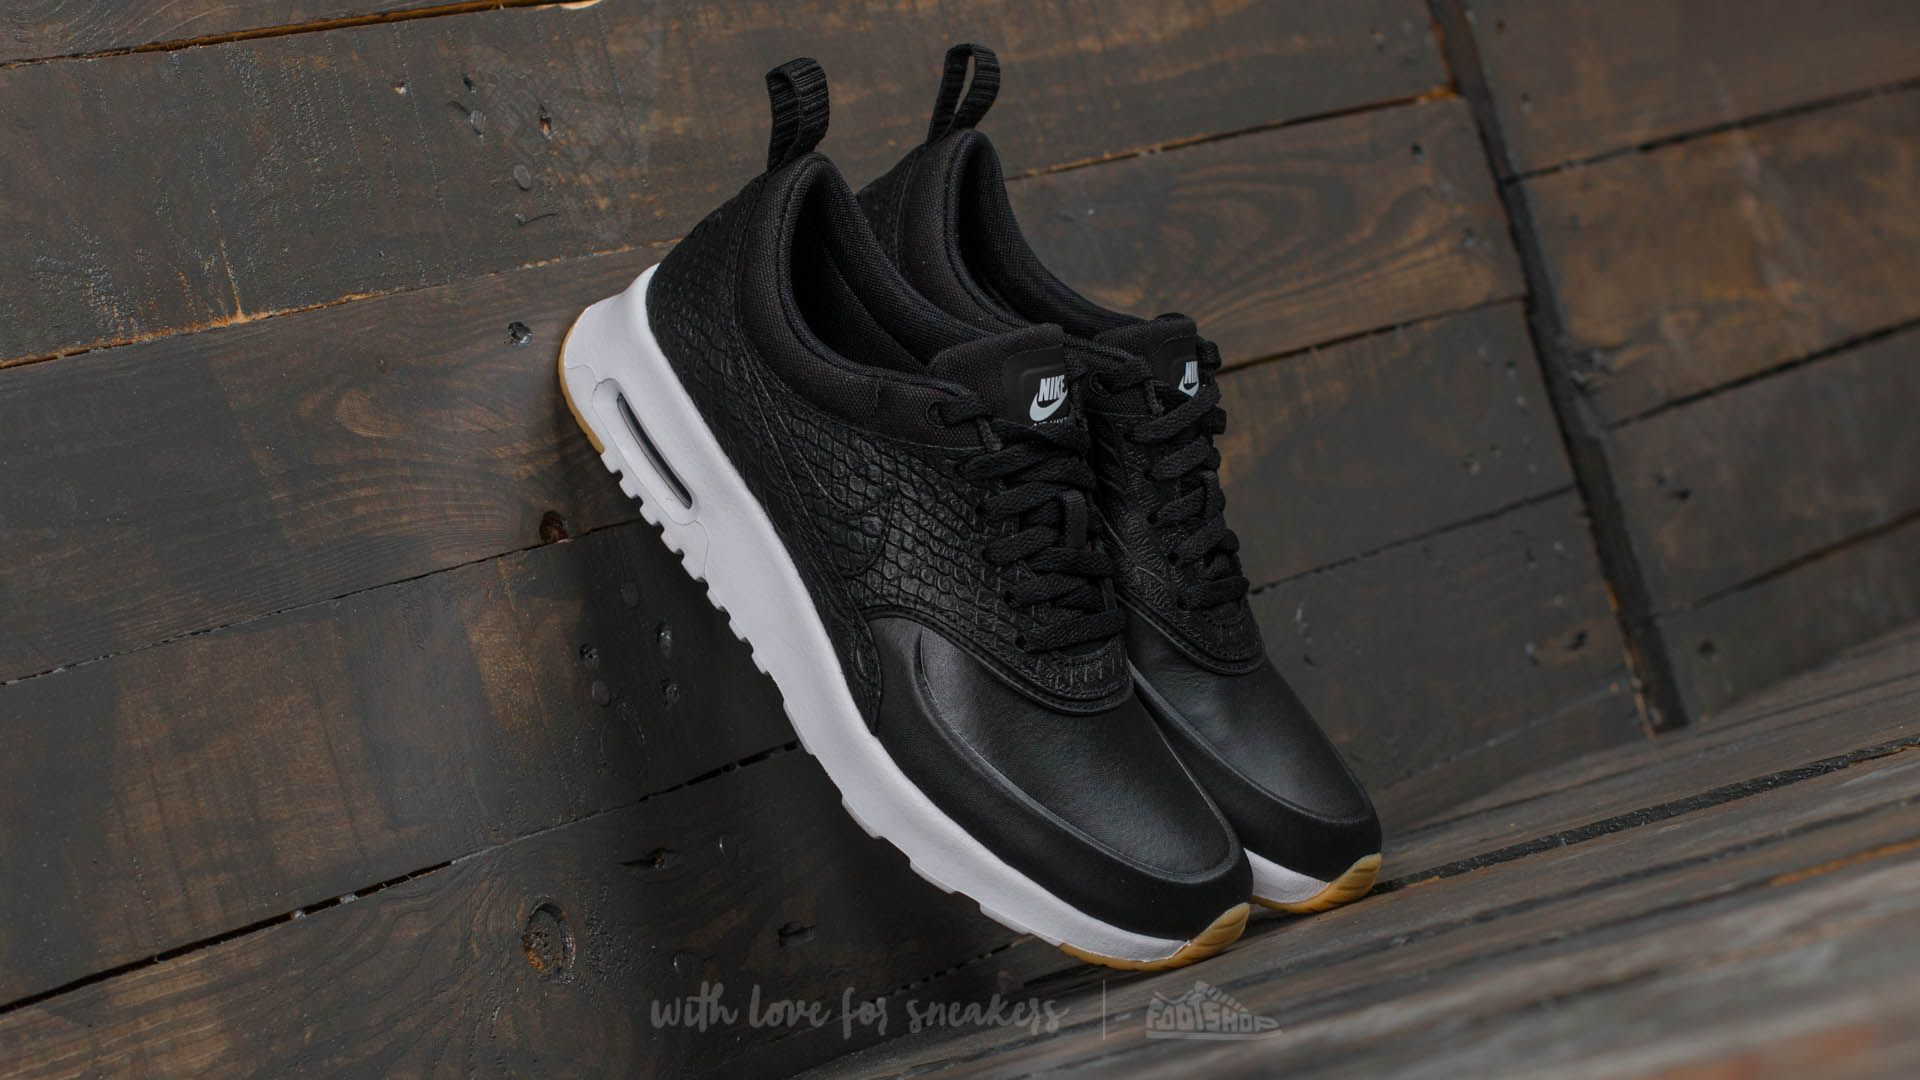 Nike Wmns Air Max Thea Premium Black/ Black-Gum Yellow-White Footshop – FR